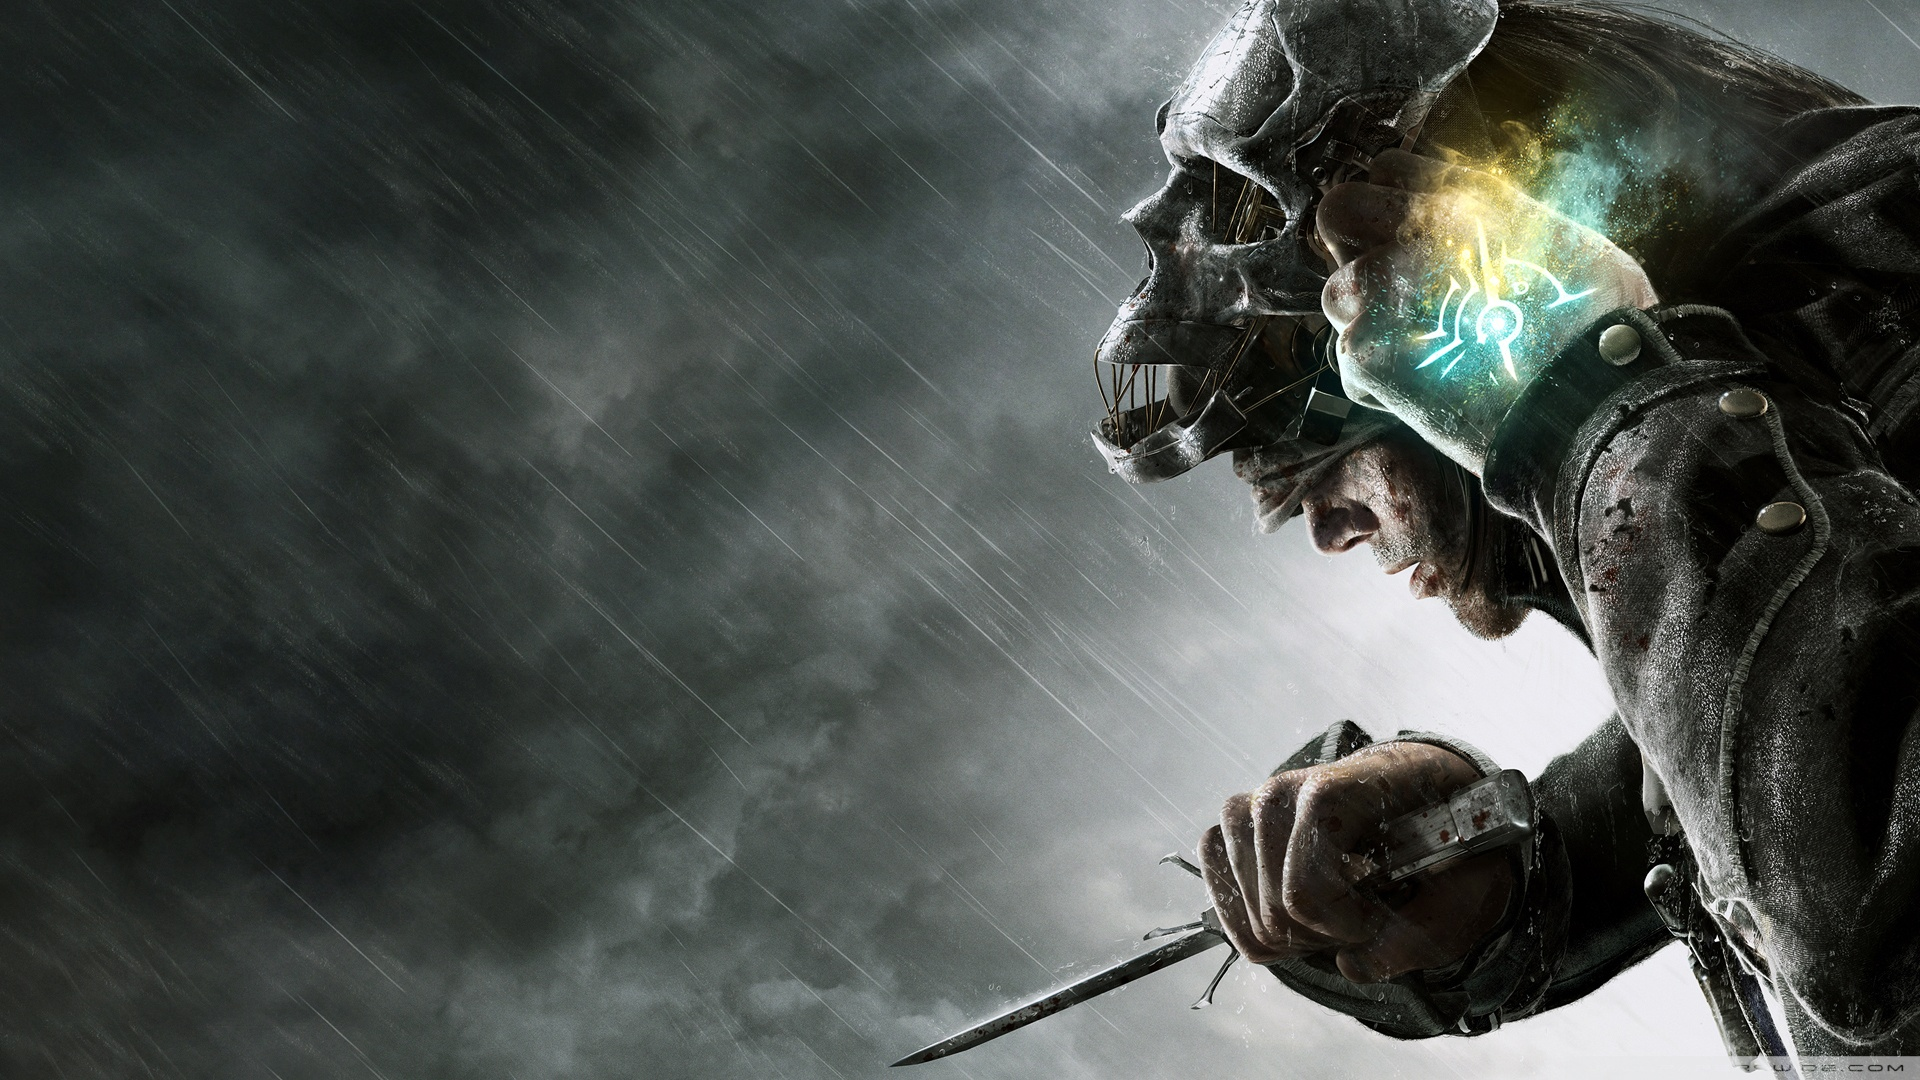 dishonored-Drawing-1920-x-1080-wallpaper-wp3604837